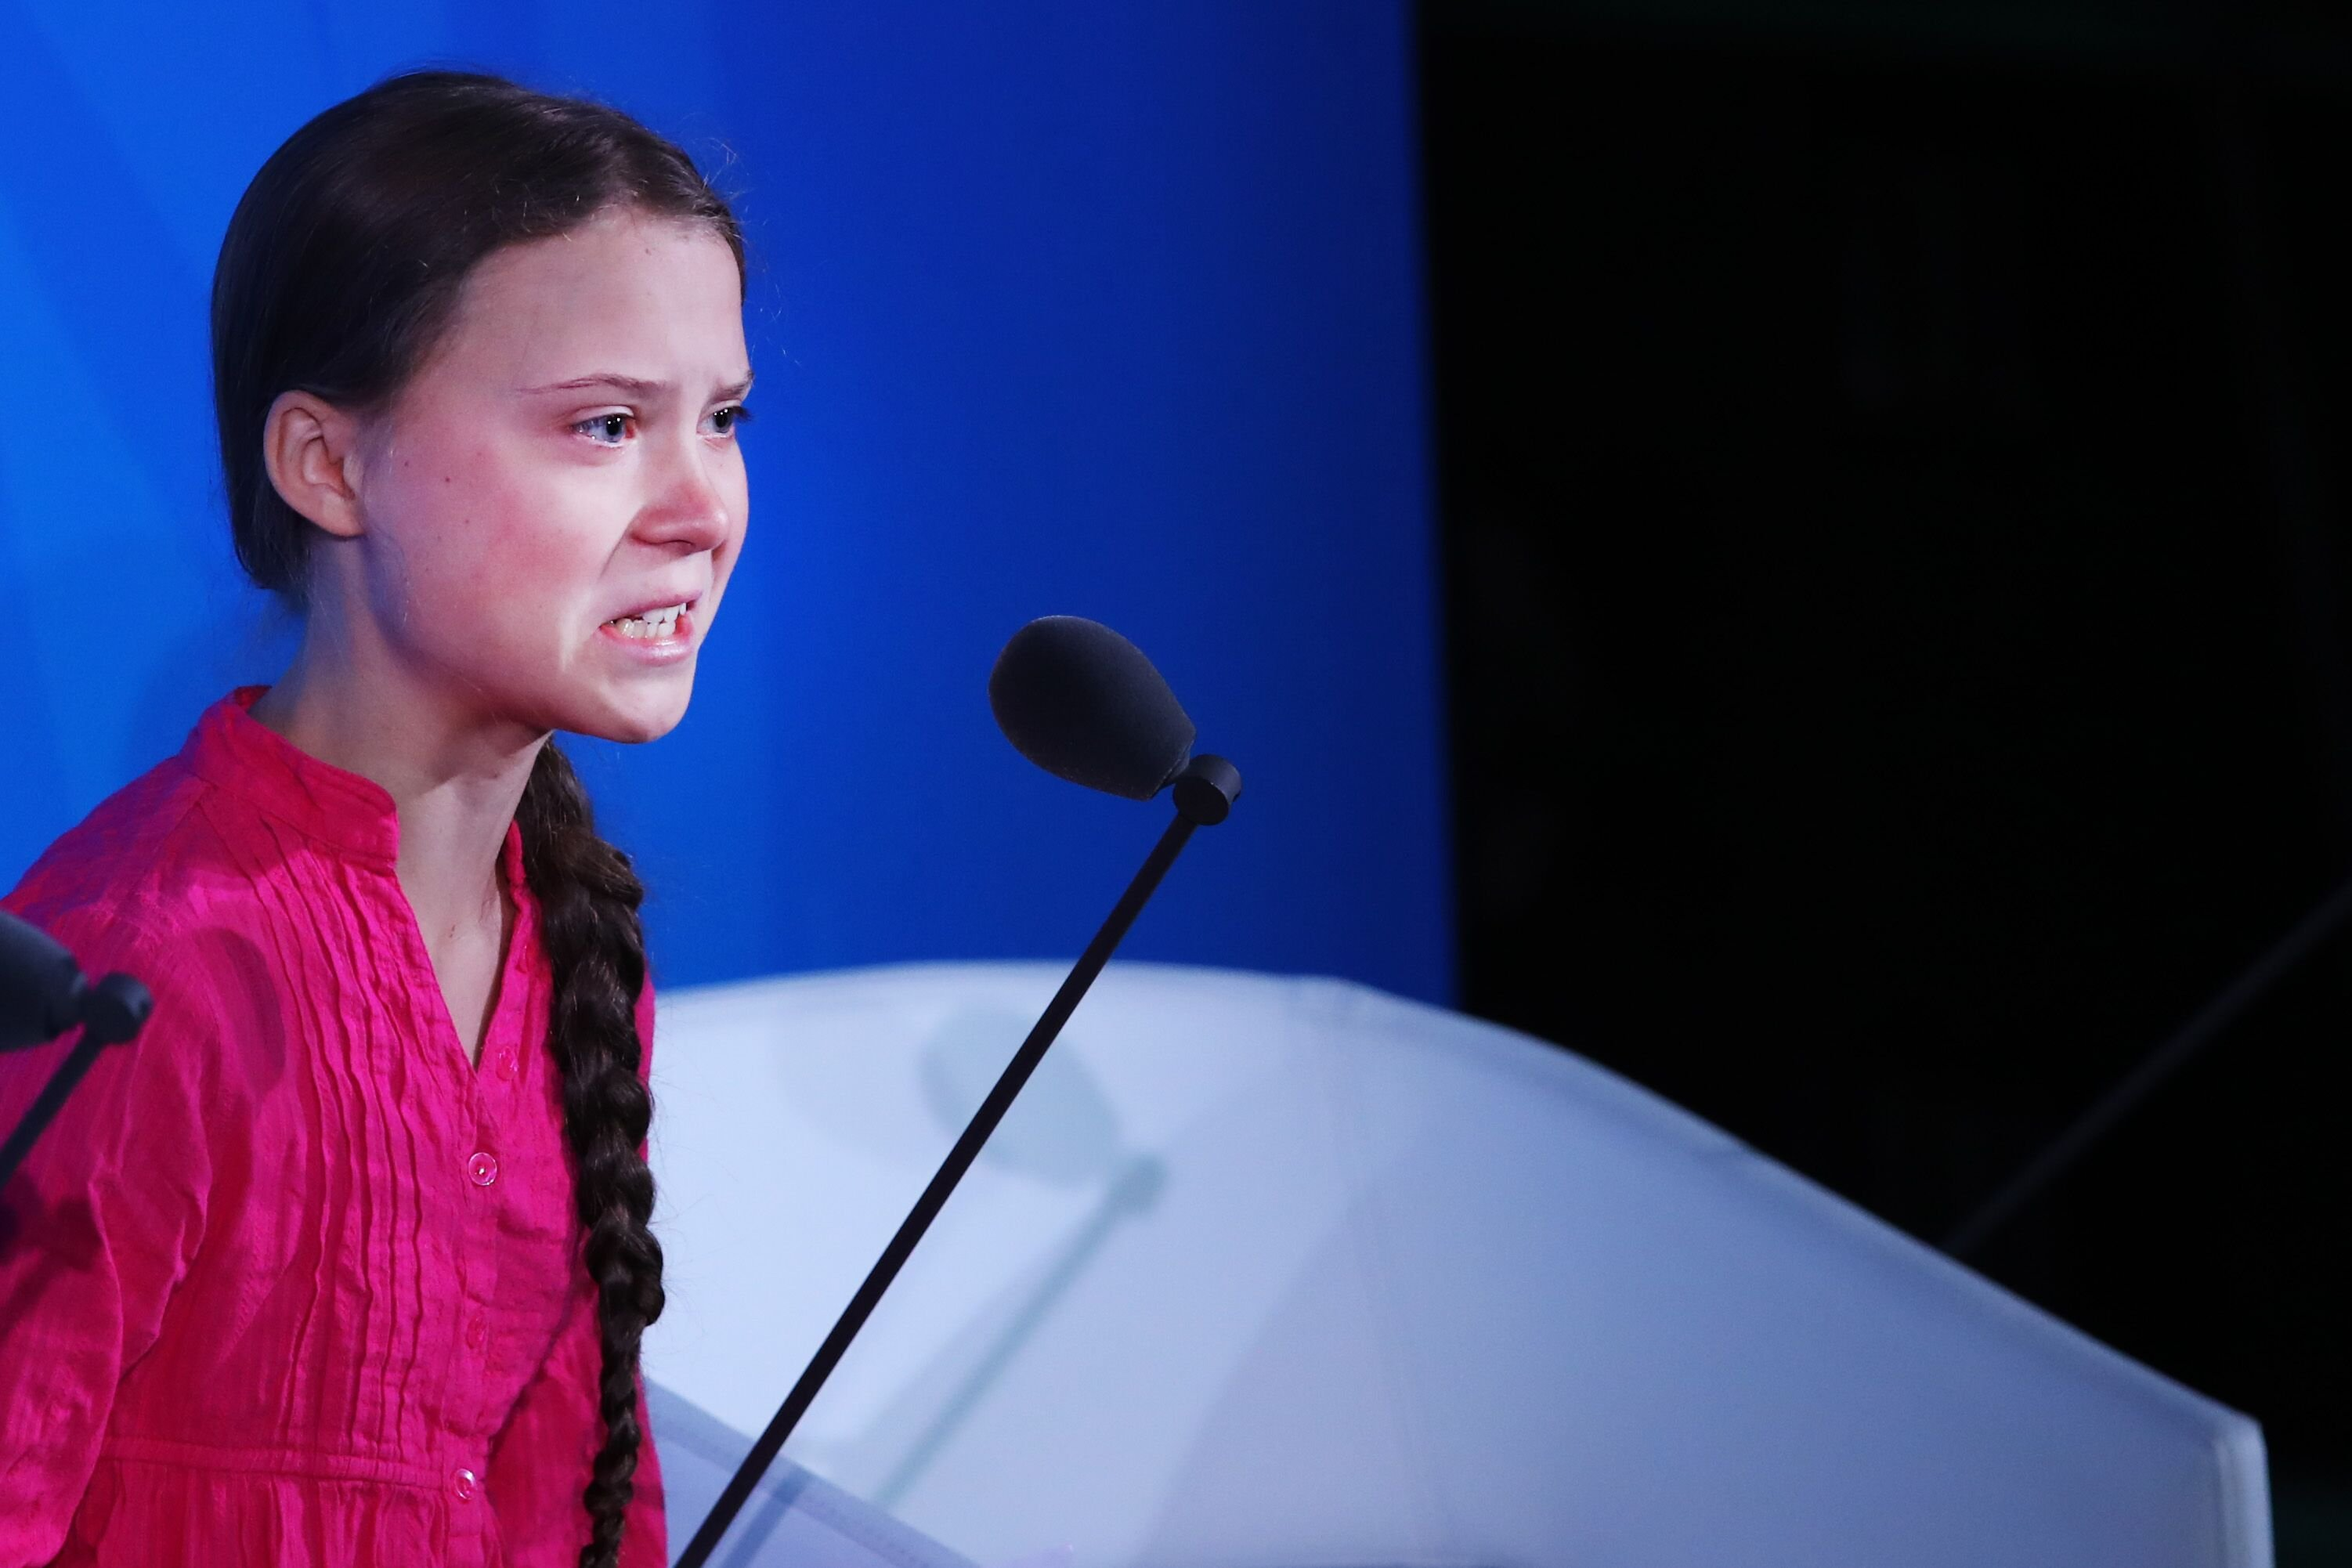 Greta Thunberg at the United Nations at a summit on climate change on September 23, 2019, in New York City | Photo: Spencer Platt/Getty Images